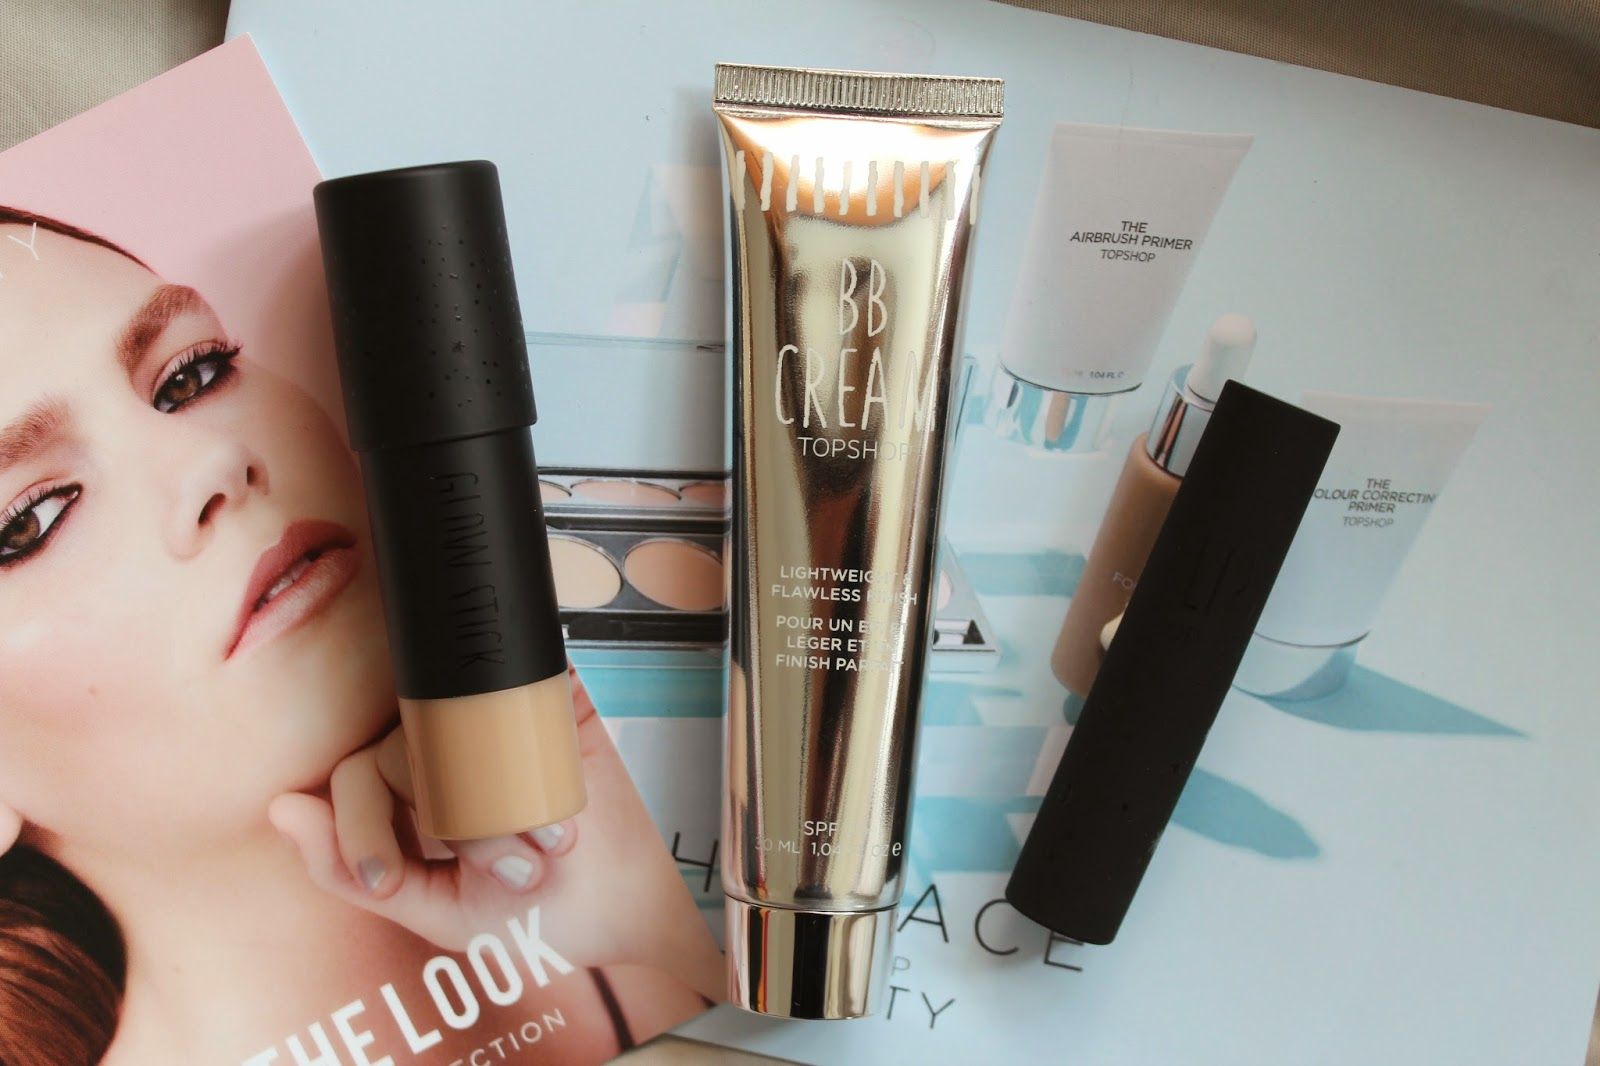 topshop bblogger bbloggers beauty make up foundation bb cream creme blemish blender highlighter glow stick play up lip sheer lipstick chuck the face make up